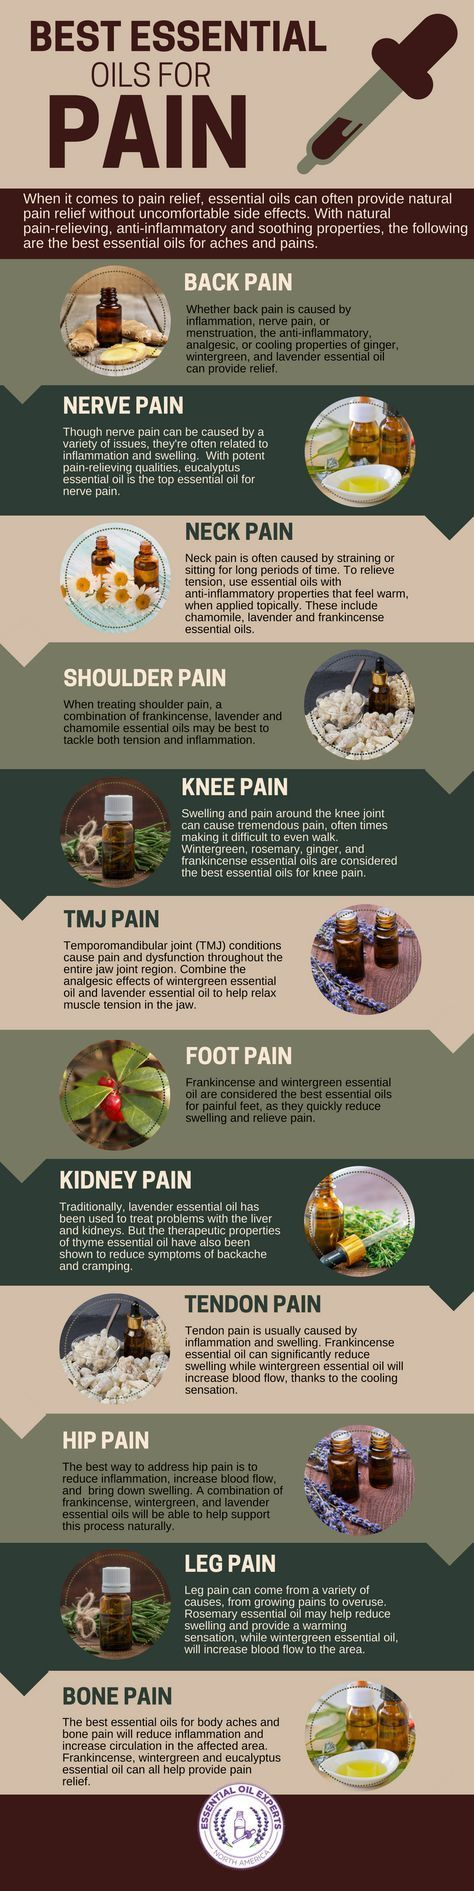 With growing awareness and use of natural treatment methods, we no longer have to depend solely on drugs to ease pain. These are 5 fantastic natural pain relievers!